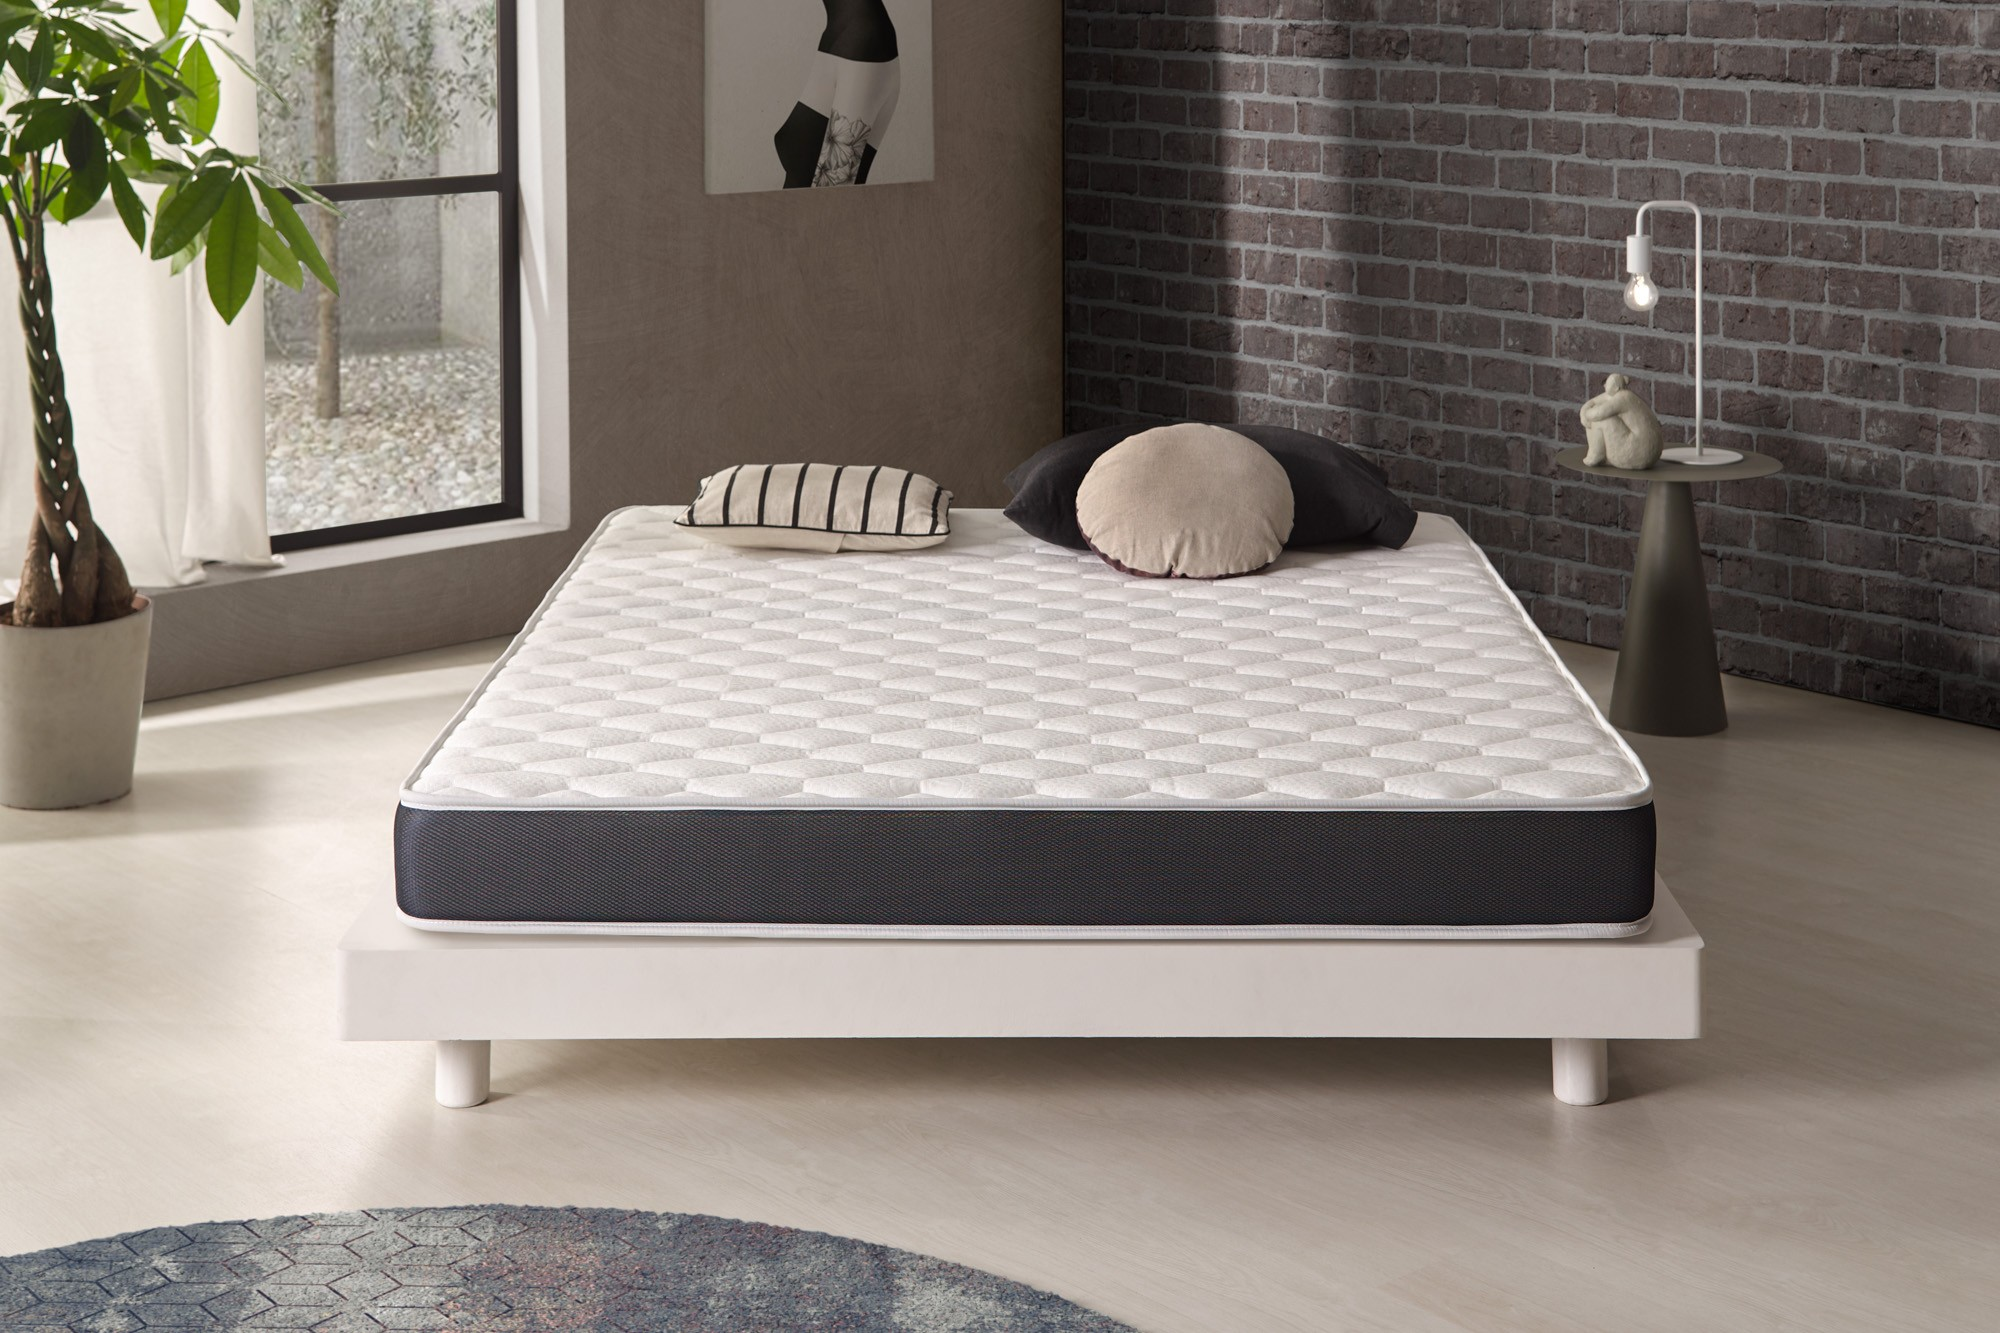 The Ergo latex model has been developed as a quality, comfortable and durable mattress.